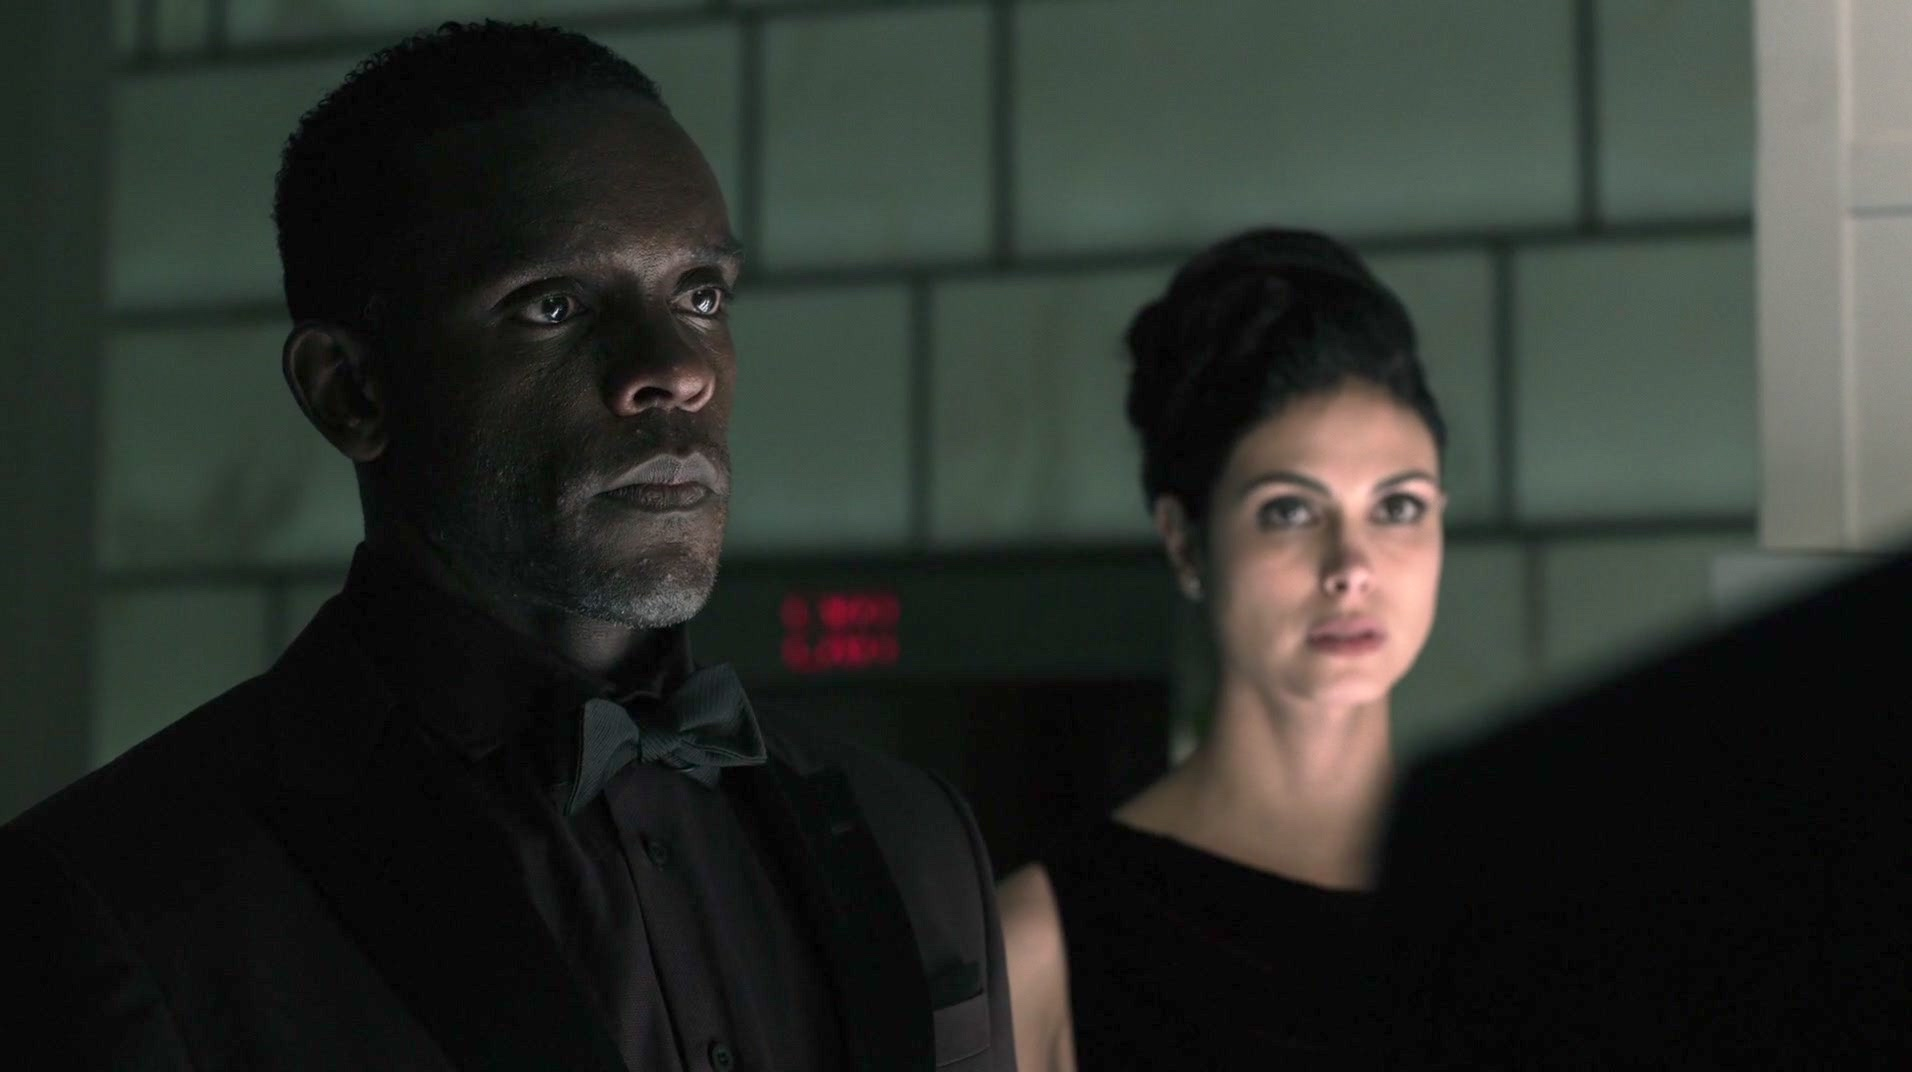 Morena Baccarin and Chris Chalk in Gotham (2014)